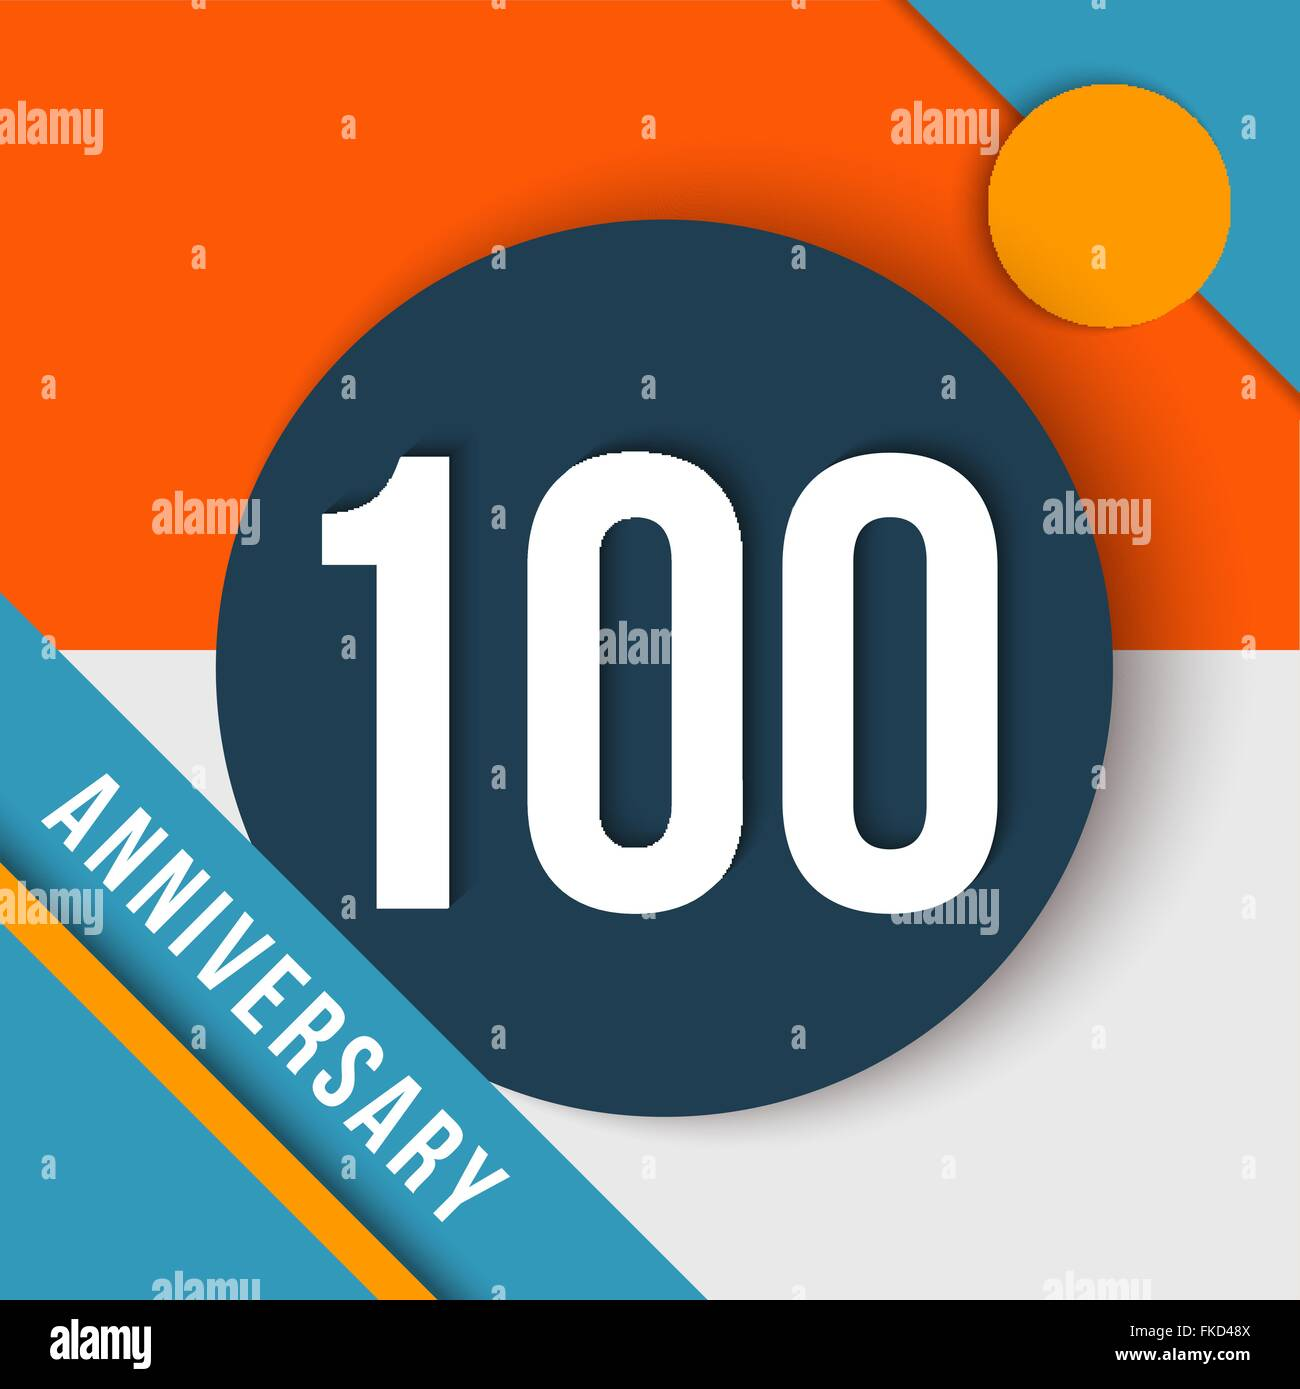 100 hundred year anniversary modern concept with number, text label and abstract shapes in material design style. - Stock Vector